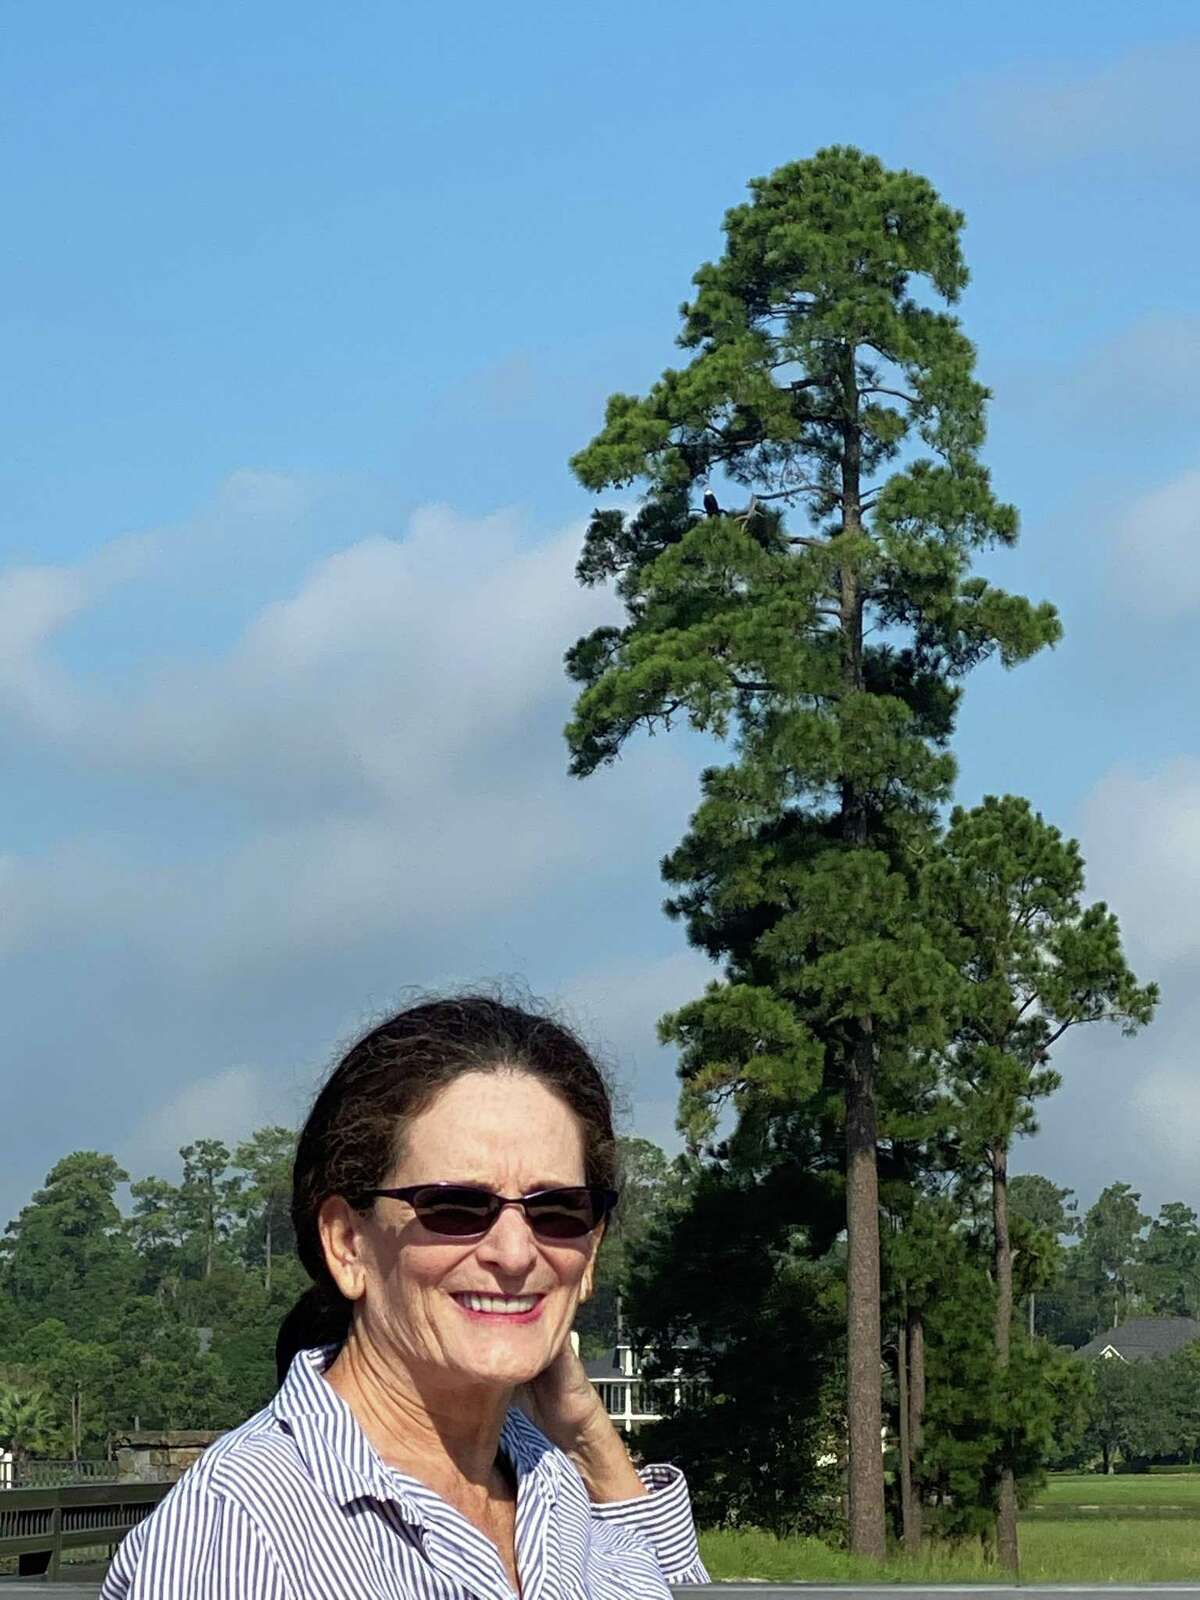 Tami Houston of East Shore, stand in the forefront of a tree on Mitchell Island where one of the bald eagles can be seen in this photograph from the weekend. Houston said the newly formed group of locals dedicated to saving the island habitat for the eagles is an off-shoot of a larger, 800 to 1,000-strong assemblage of area residents who object to the plans to change the layout of the island - currently set at 19 large mansions - to 58 closely-spaced homes. While the eagles are an important aspect of objections, she said that many issues have been raised with the development plants by Howard Hughes, from traffic congestion, noise, possibly 18 months of intensitve contruction and taking down of more trees in the area..